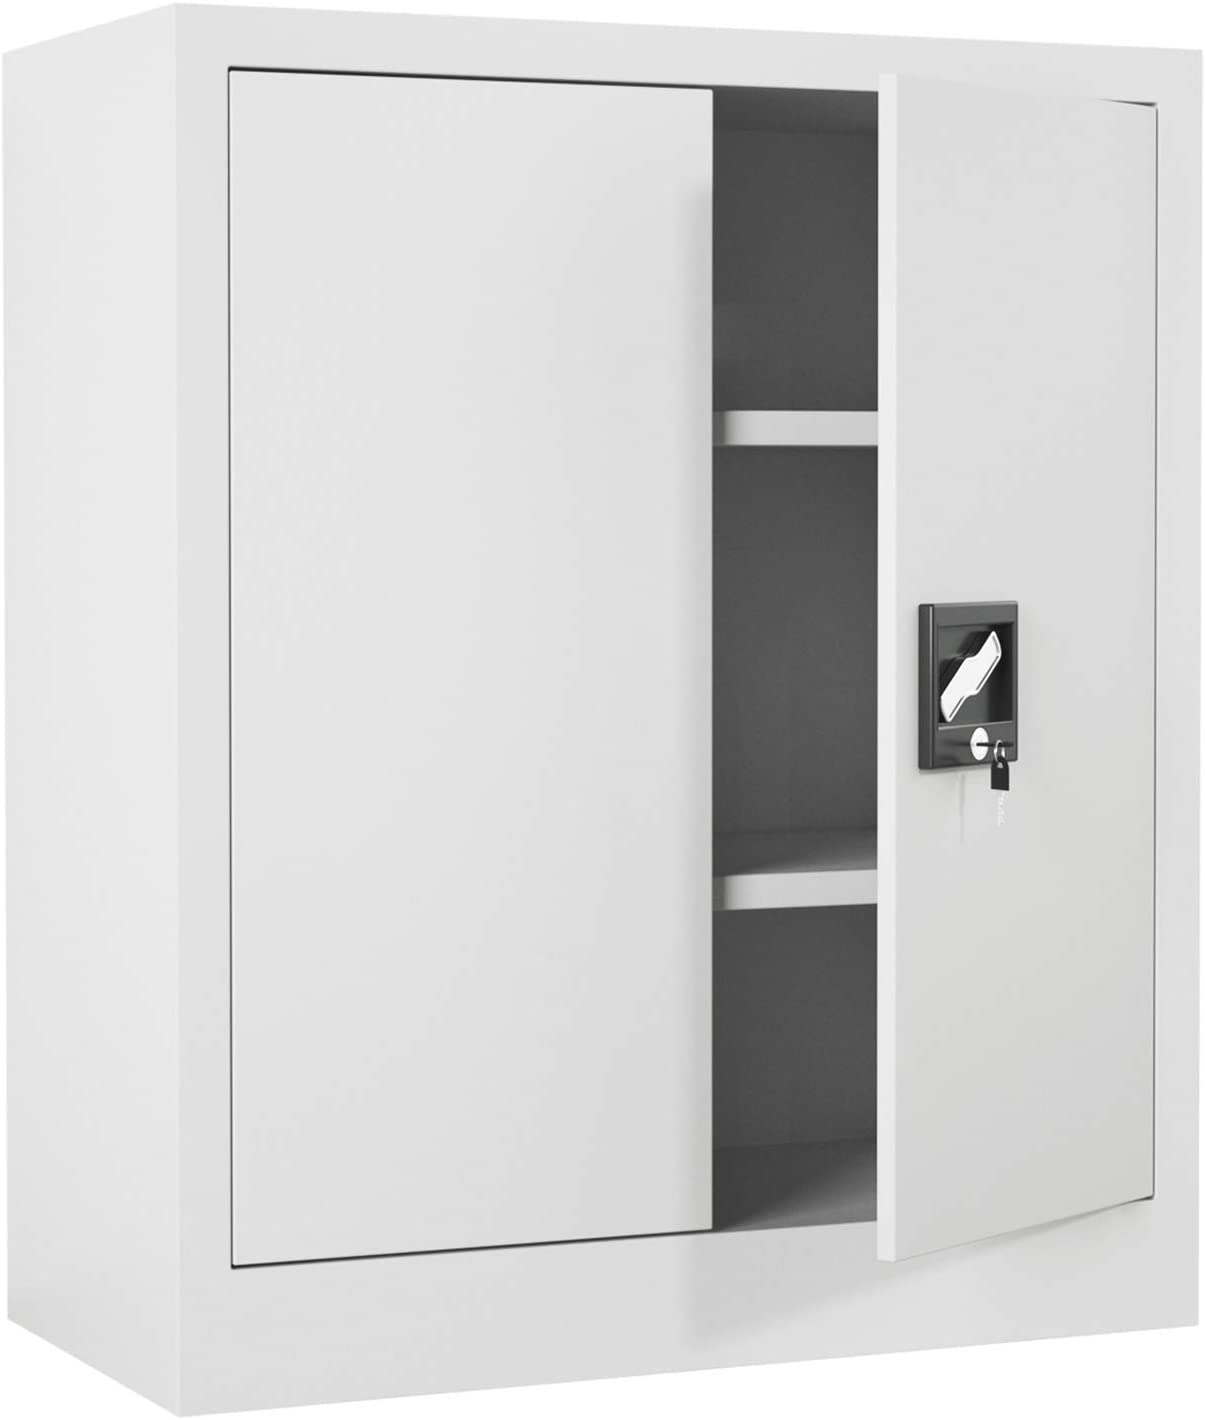 iJINGUR Metal Storage Cabinet with Locking Doors & 2 Height Adjustable Shelves for Office, Garage and Kitchen Pantry (Gray)